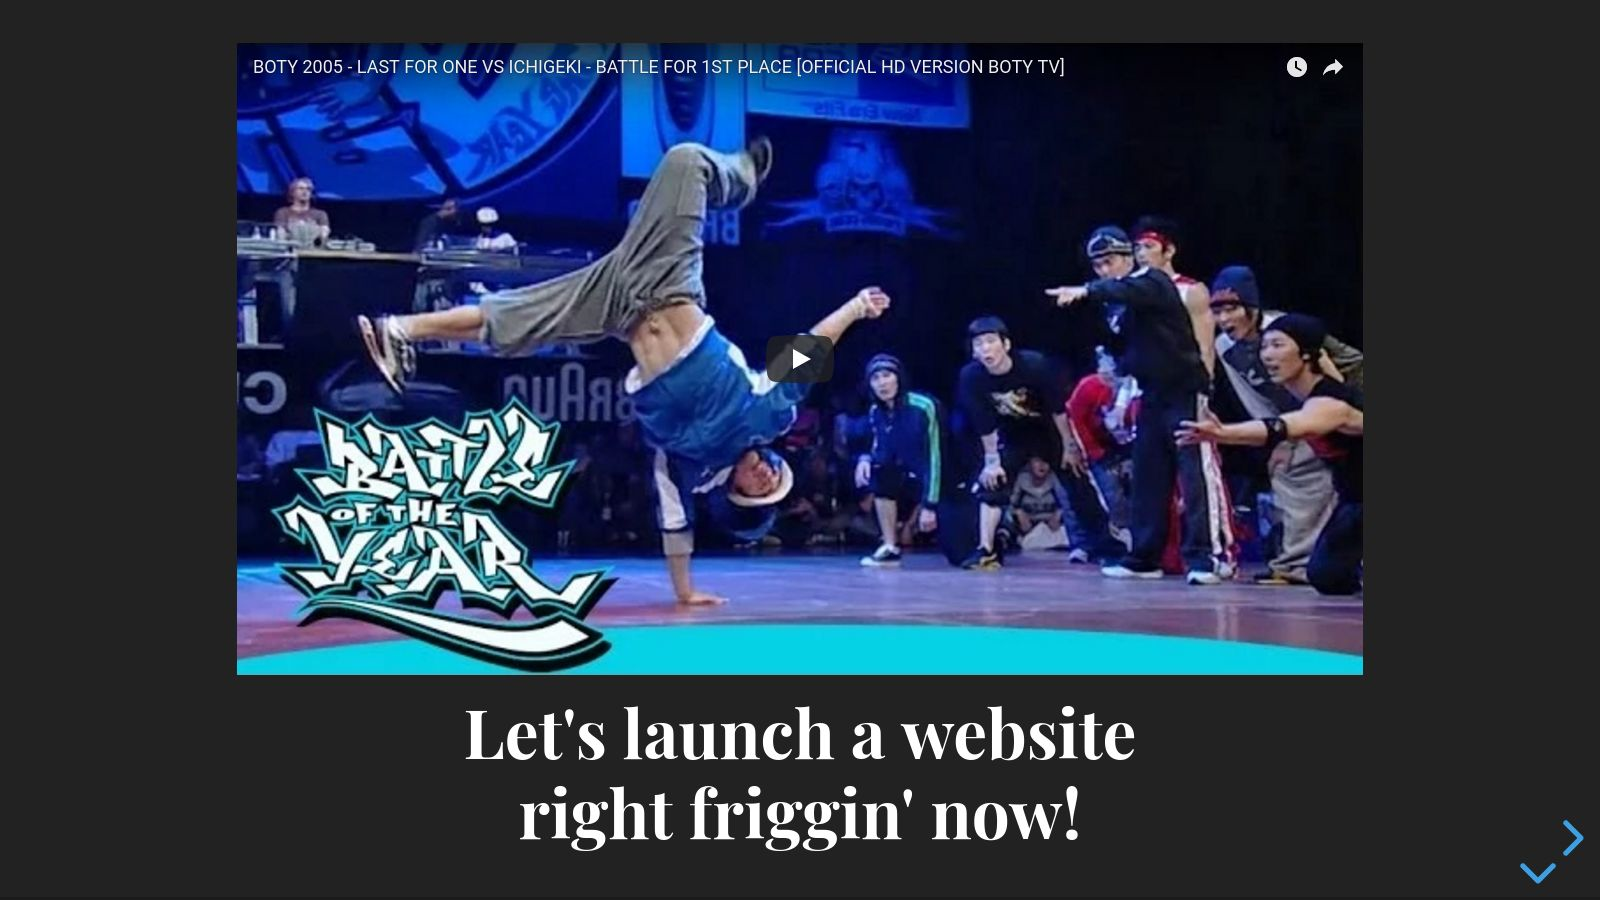 Let's launch a website, right friggin' now!